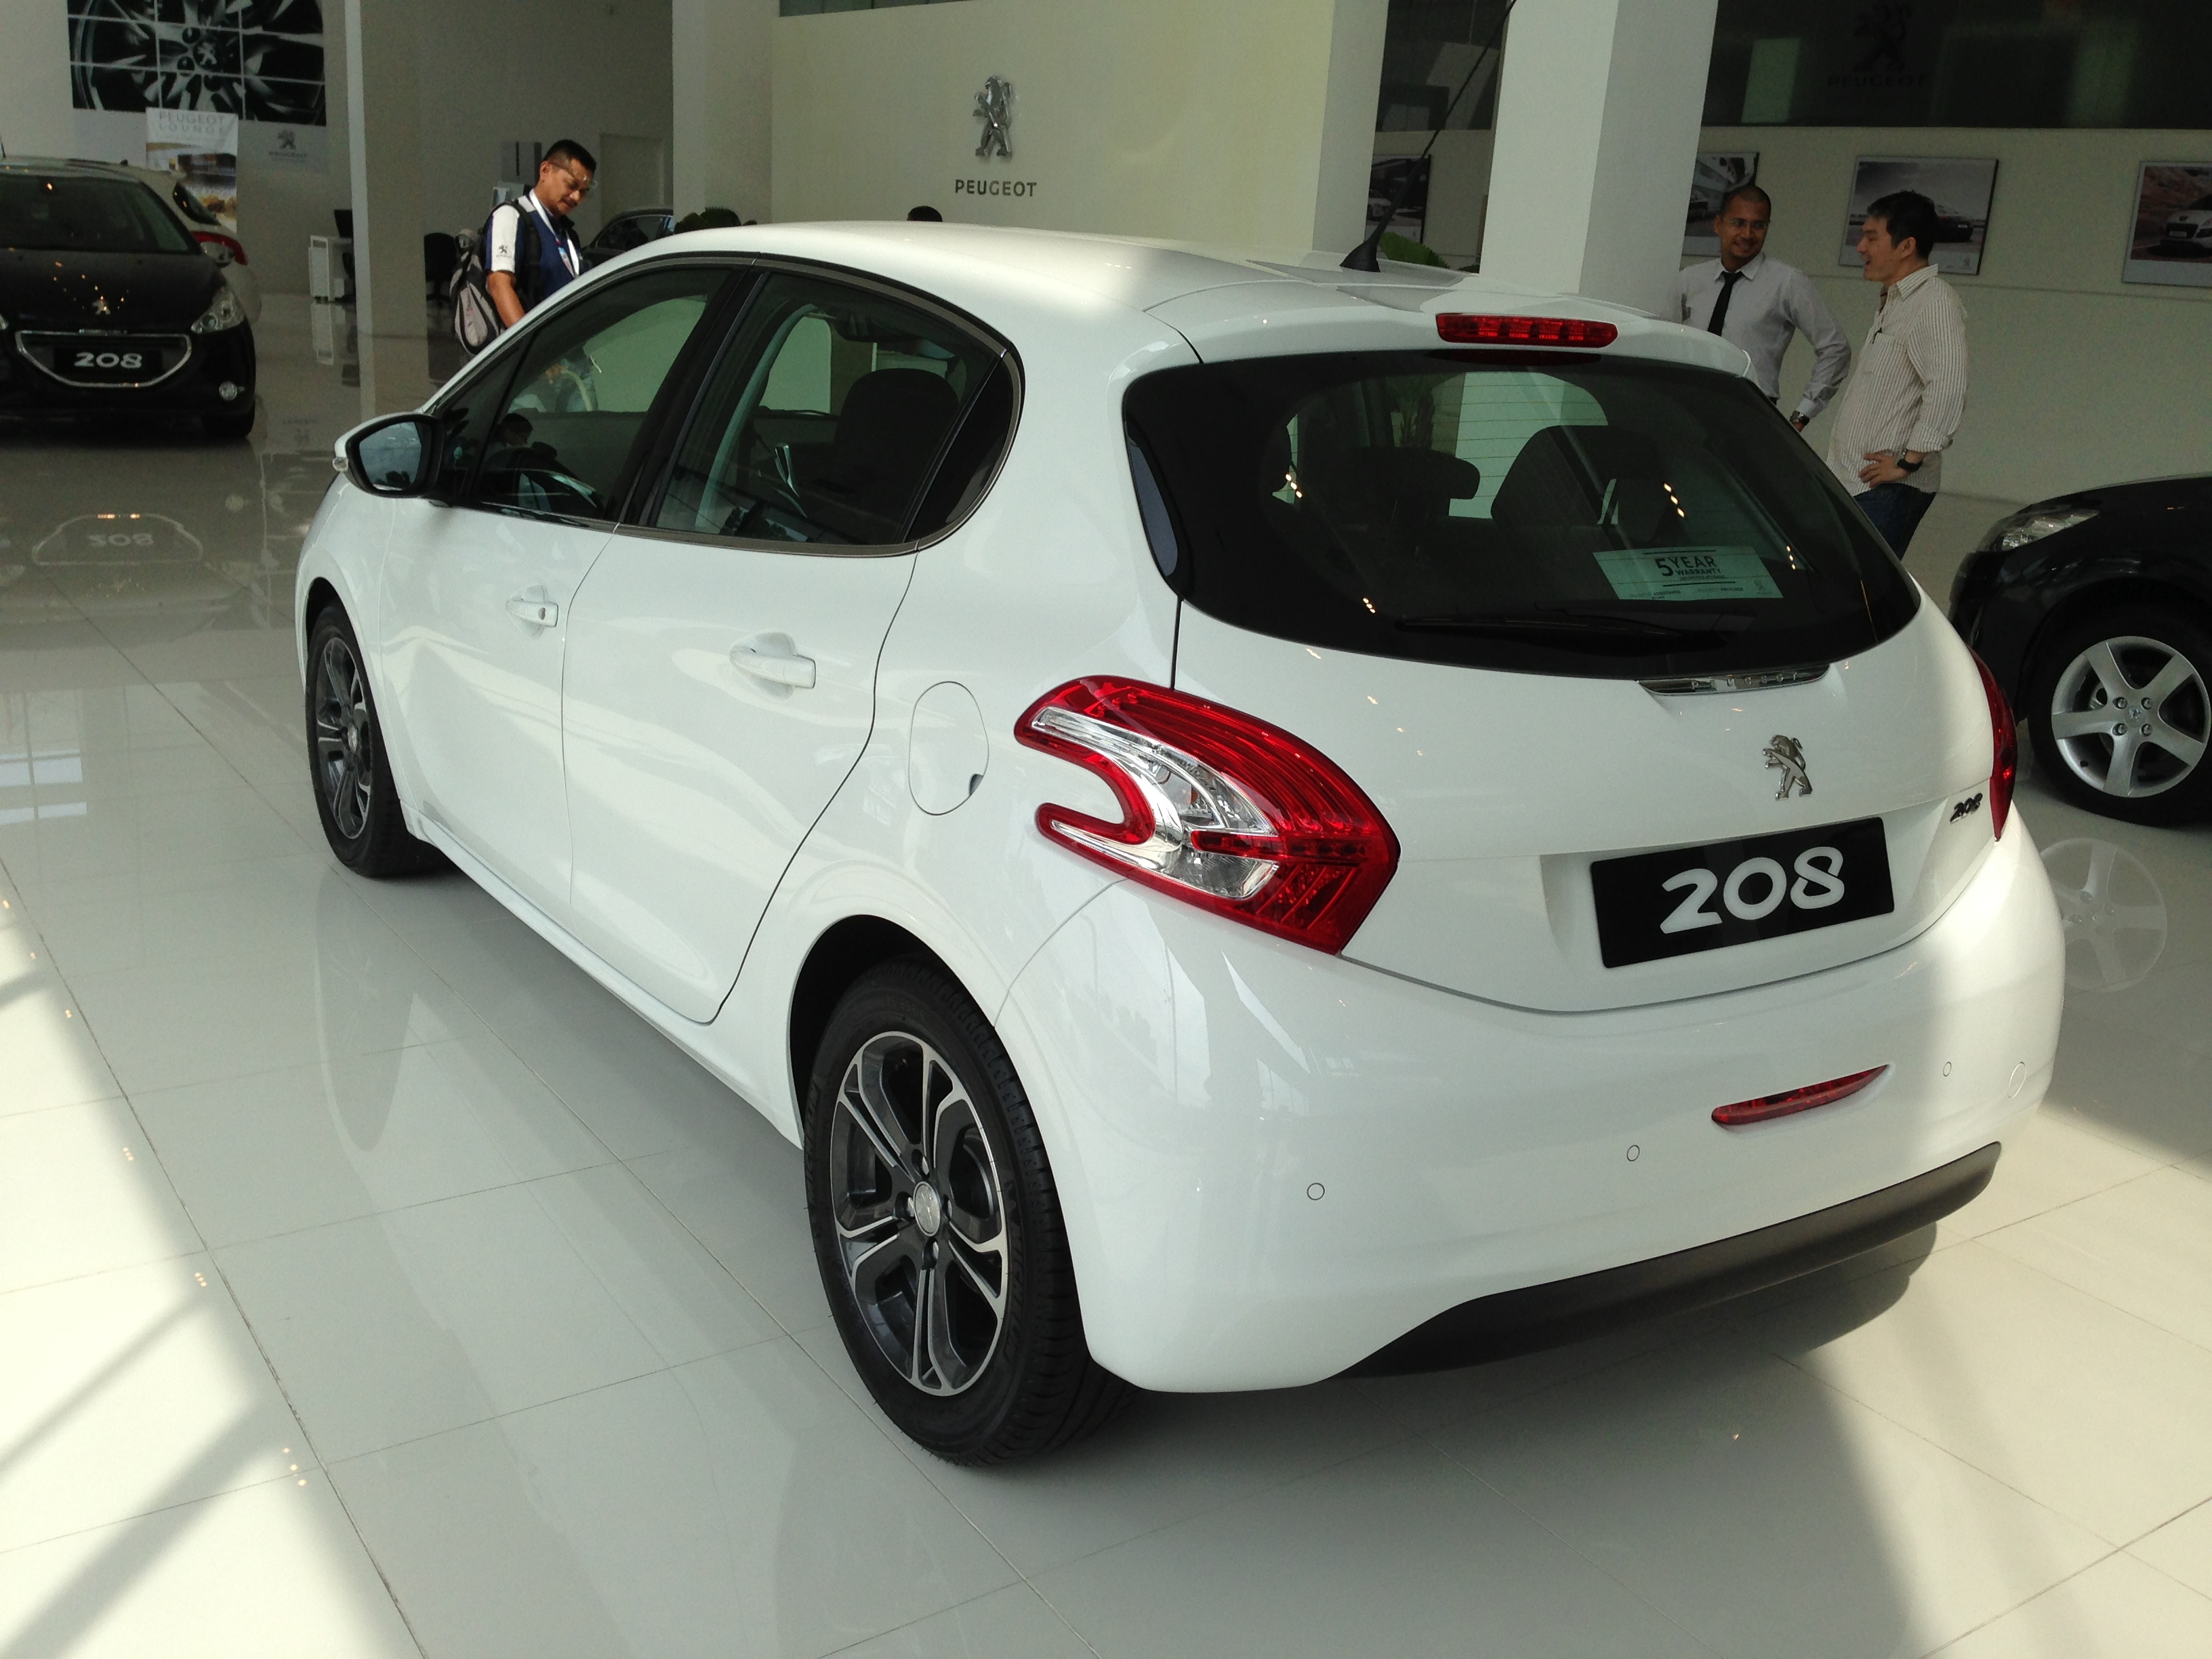 peugeot 208 on display specs unveiled via brochures image 167848. Black Bedroom Furniture Sets. Home Design Ideas